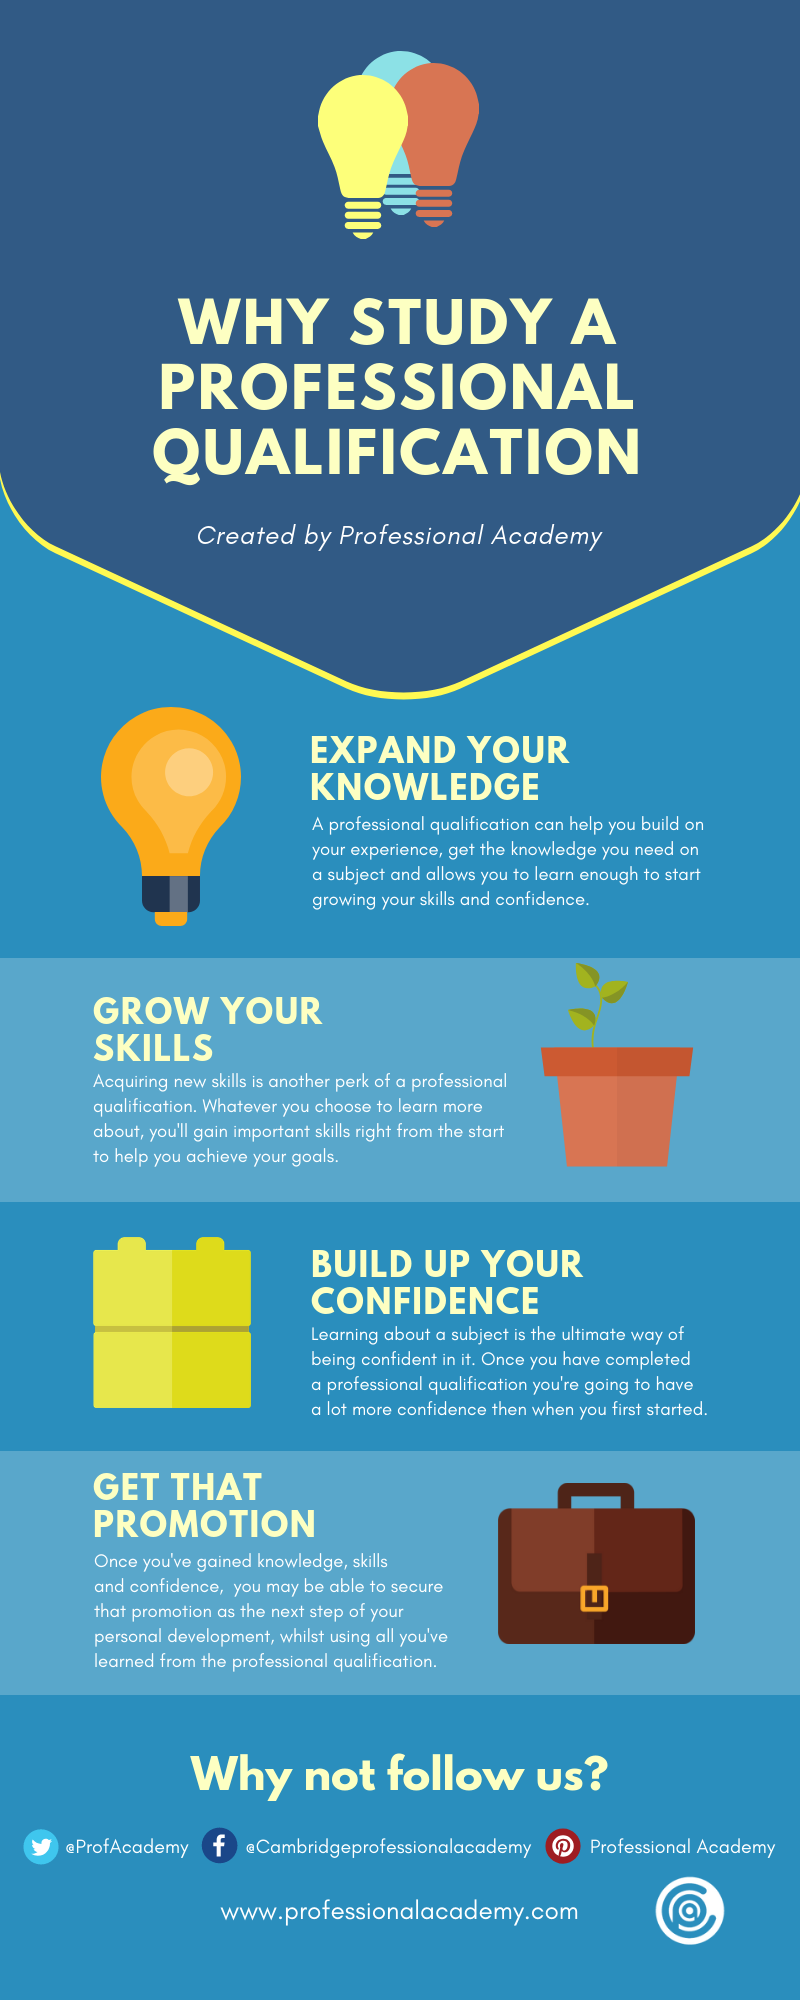 Why study a professional qualification infographic